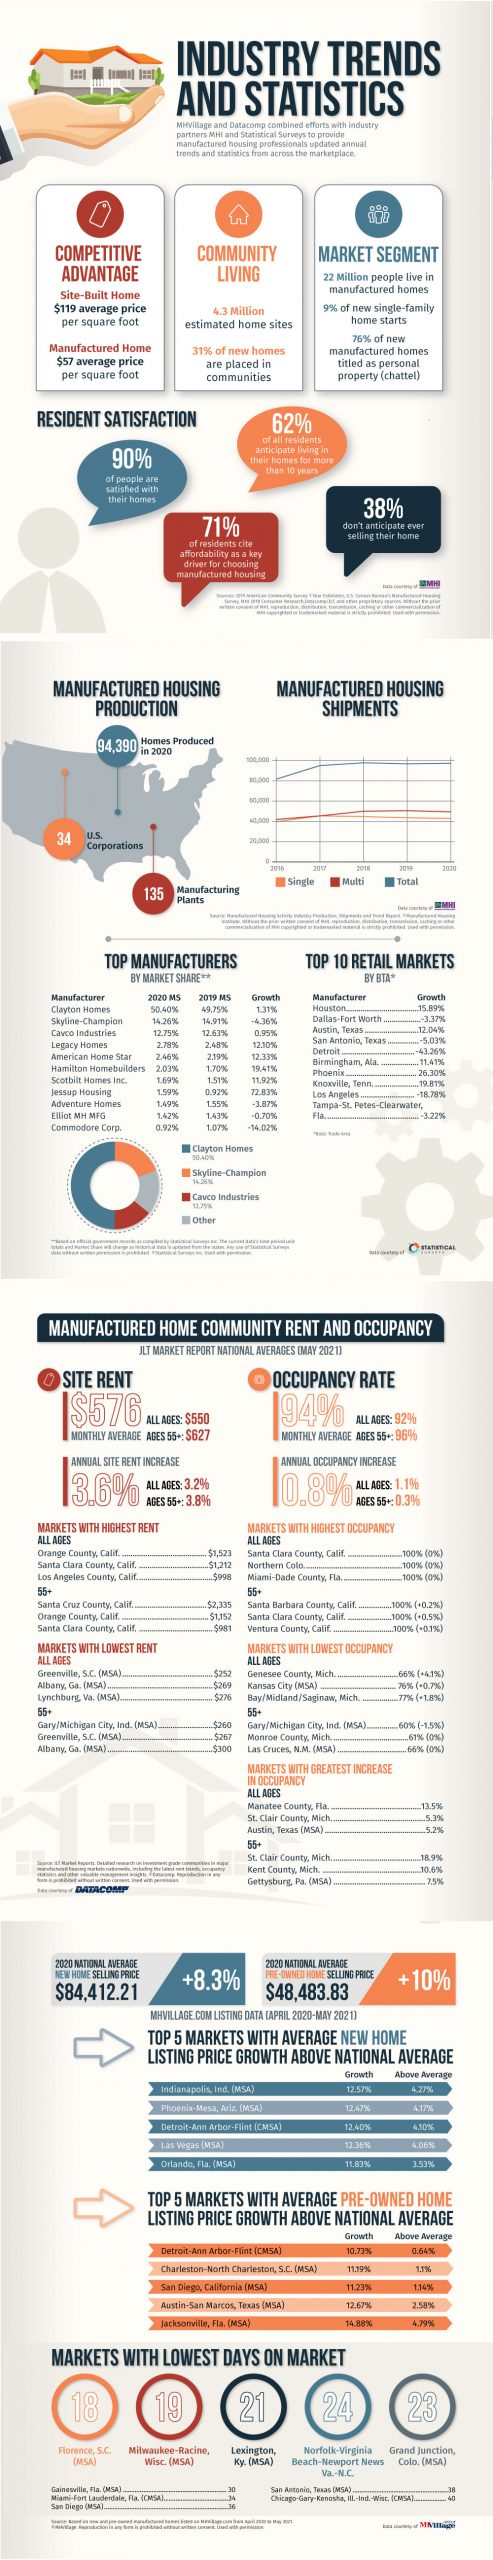 2021 manufactured housing industry statistics and trends inforgraphic